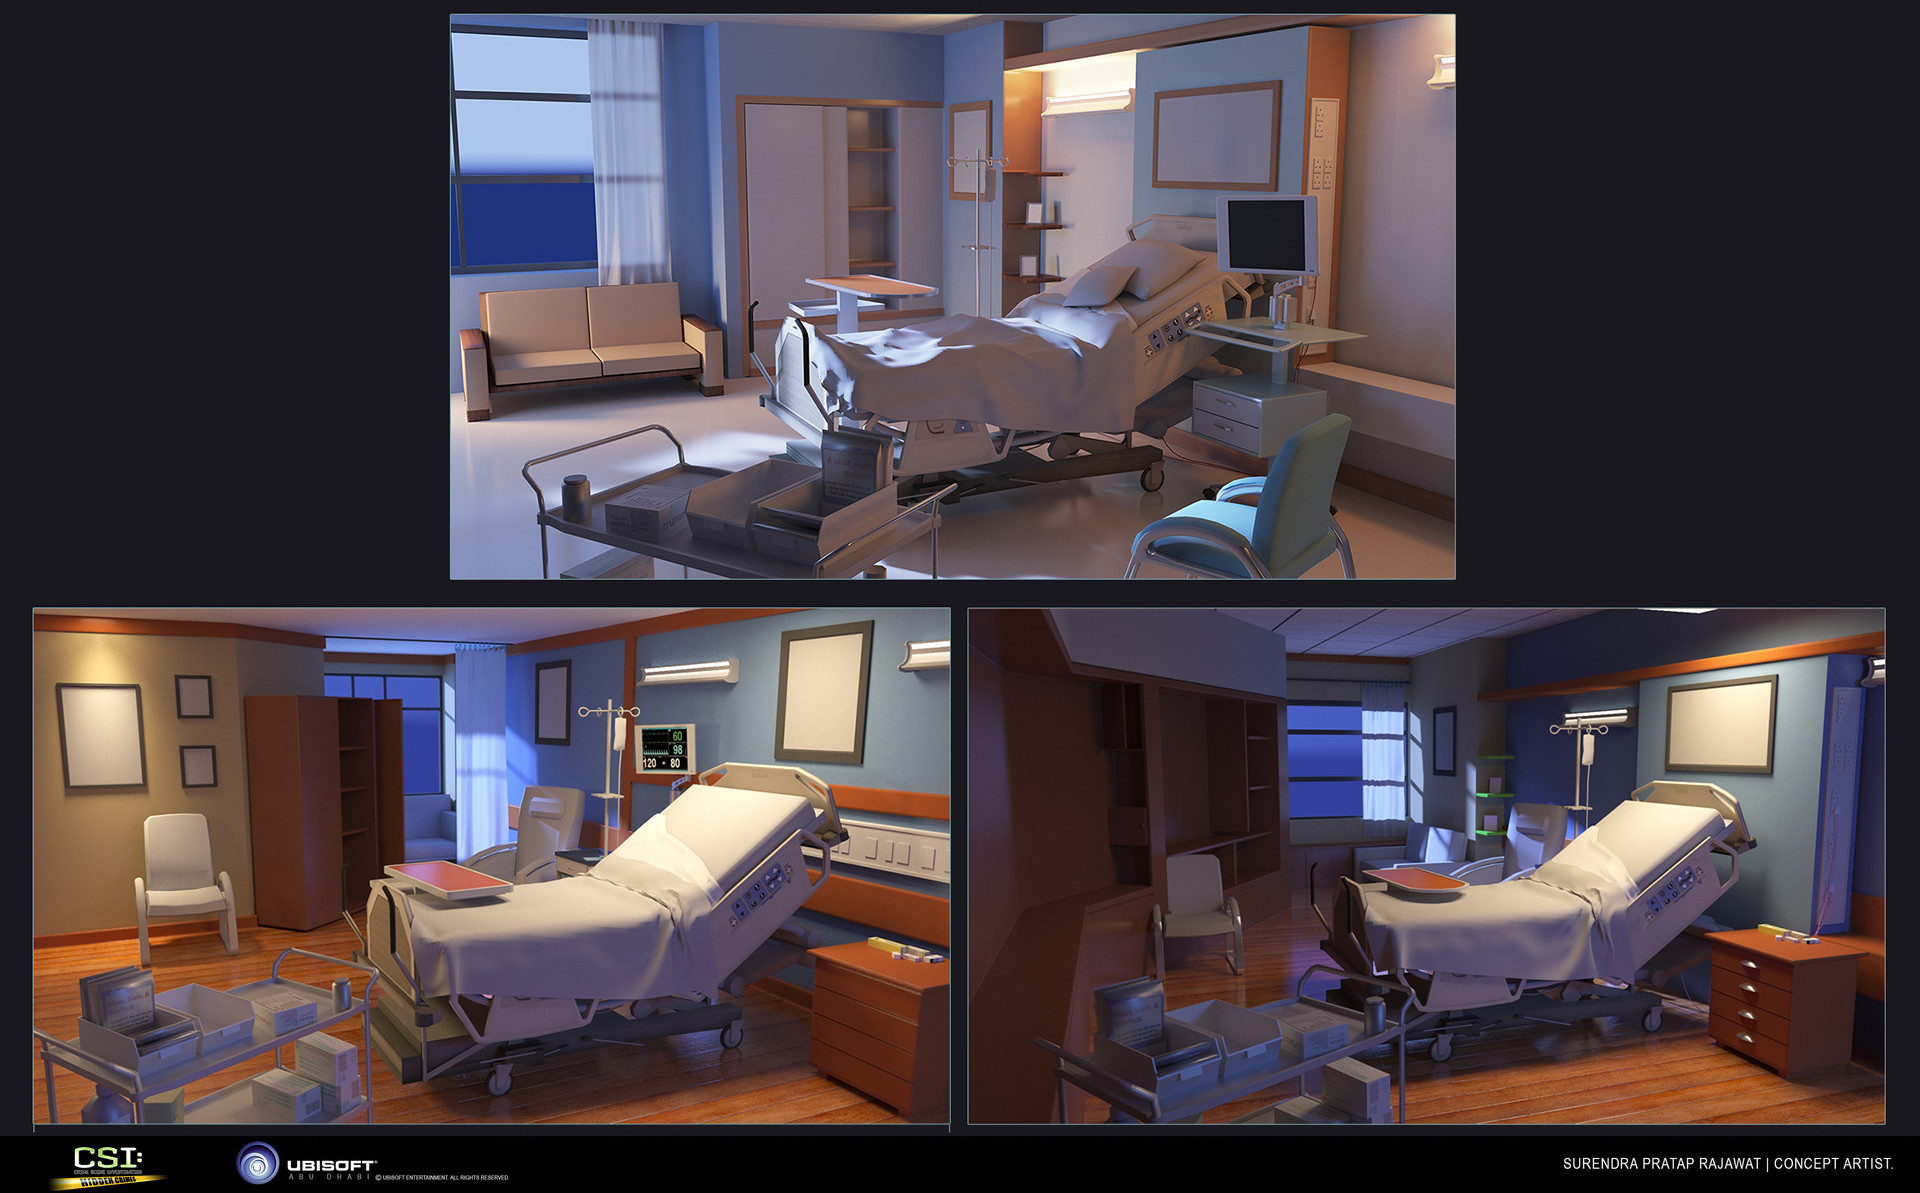 Patient room's ideas